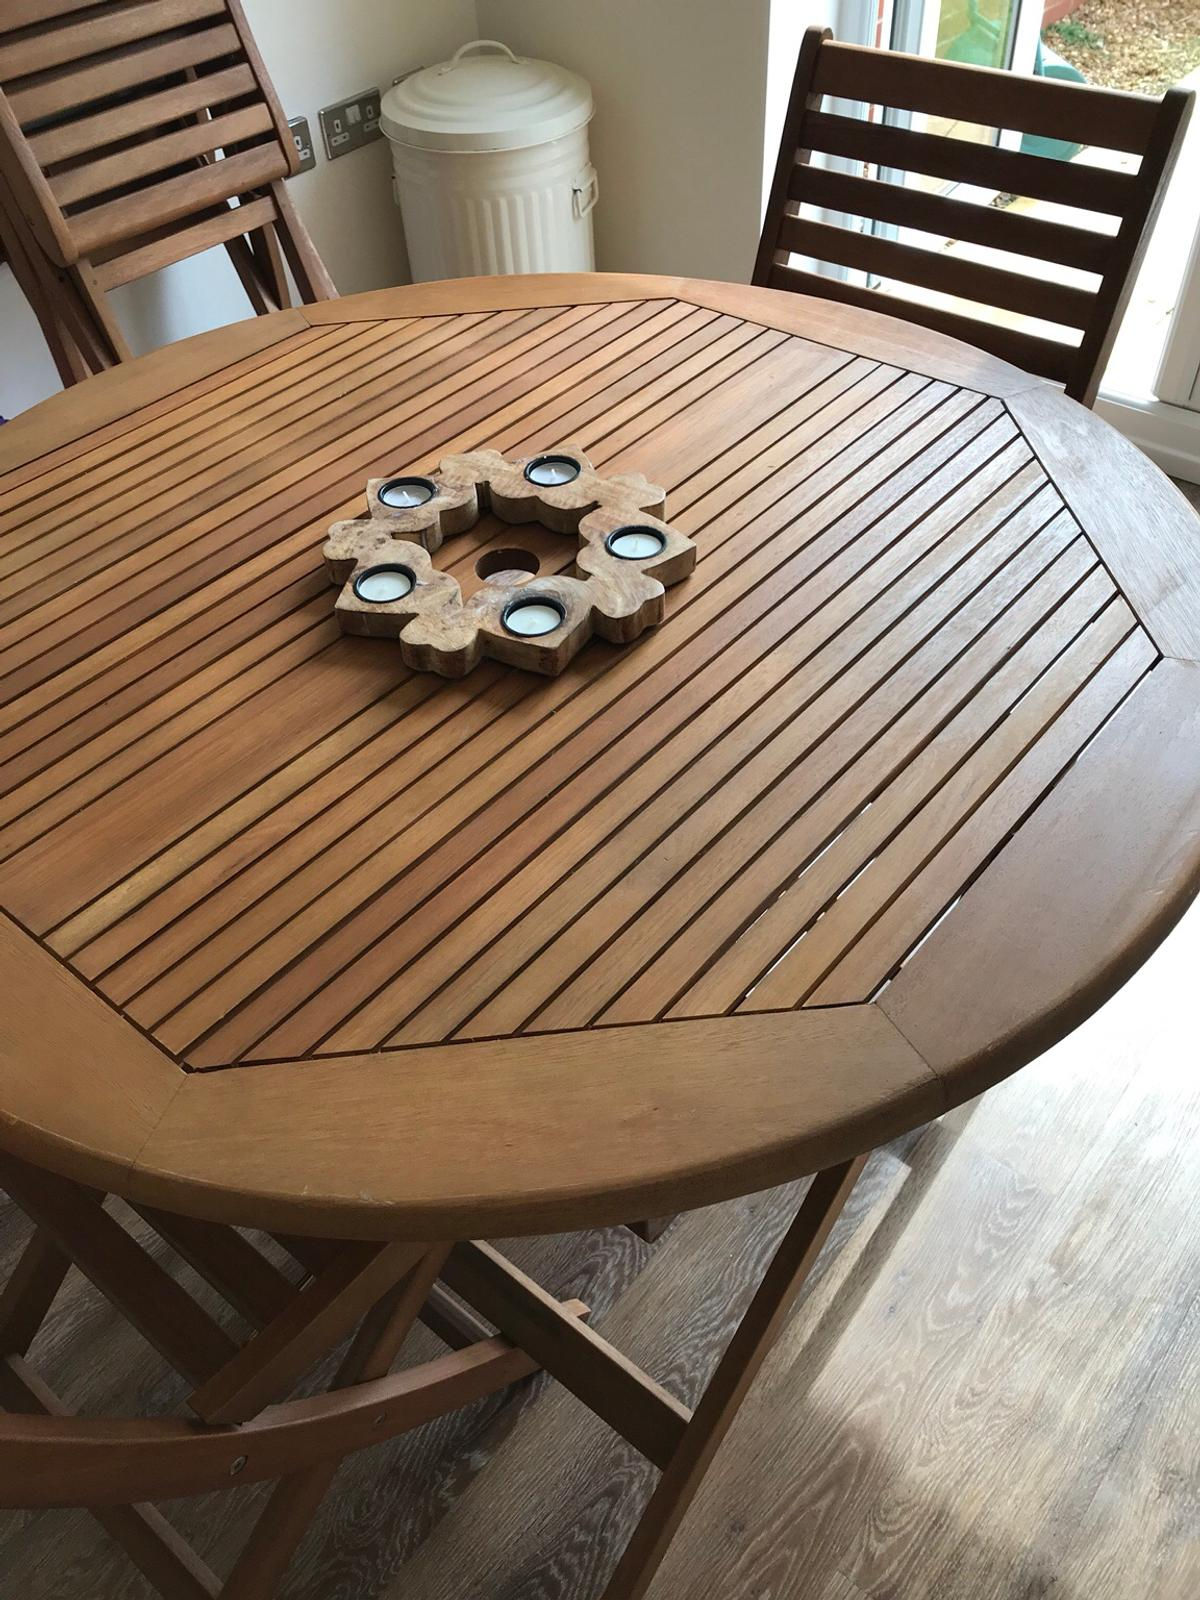 B&Q garden table and chairs in Chorley for £70.00 for sale ...